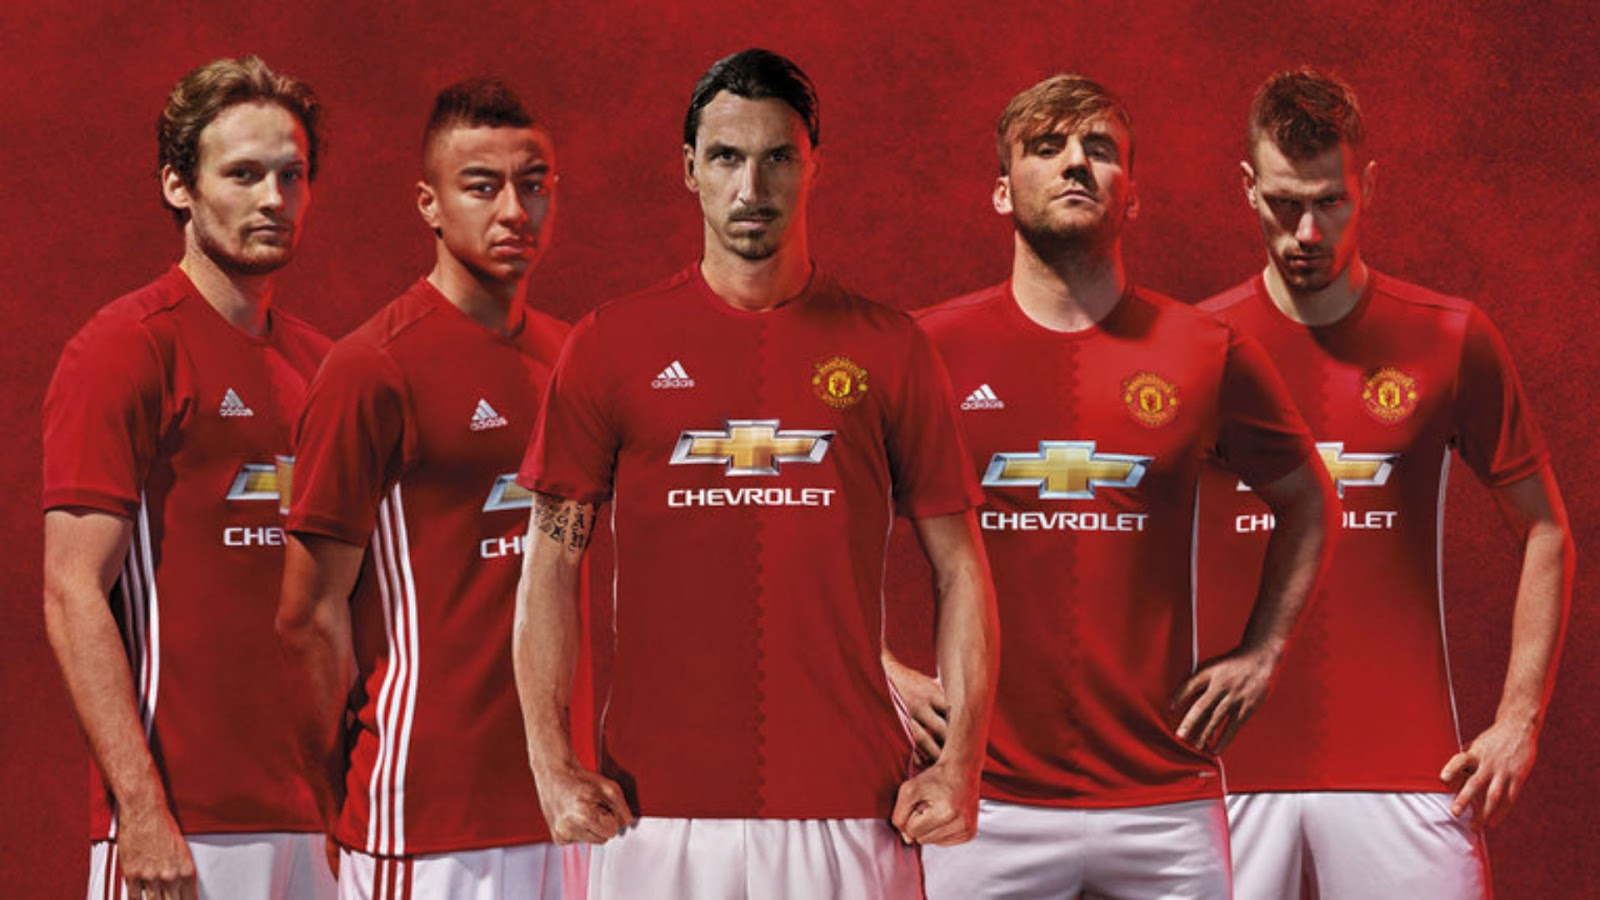 718fae4c5 Buy Manchester United 2016-17 Home Jersey Online. Buy here. Adidas used two  tones of red color on the front of jersey. Two shades of hexagonal pattern  is ...